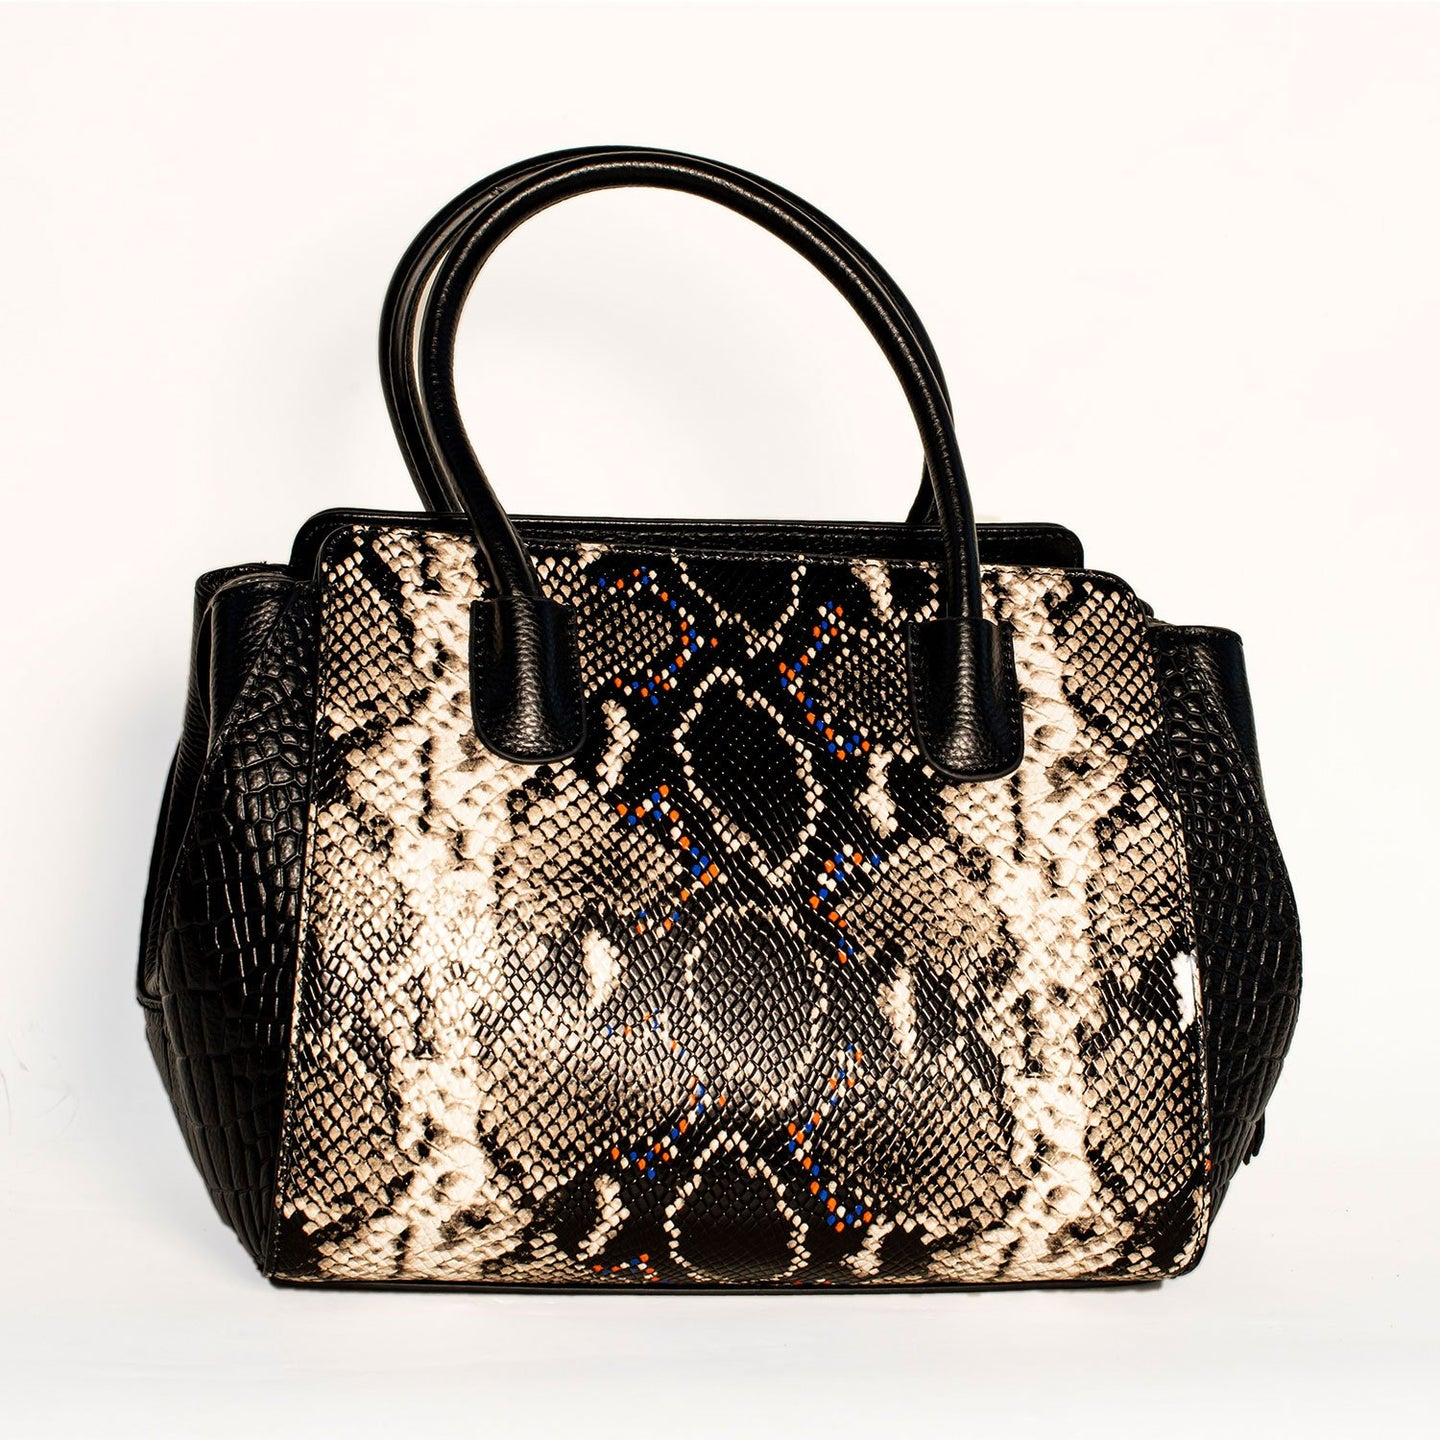 TRENDY WOMEN TOTE BAG WITH BLACK  WHITE SNAKE PRINT SPOTS